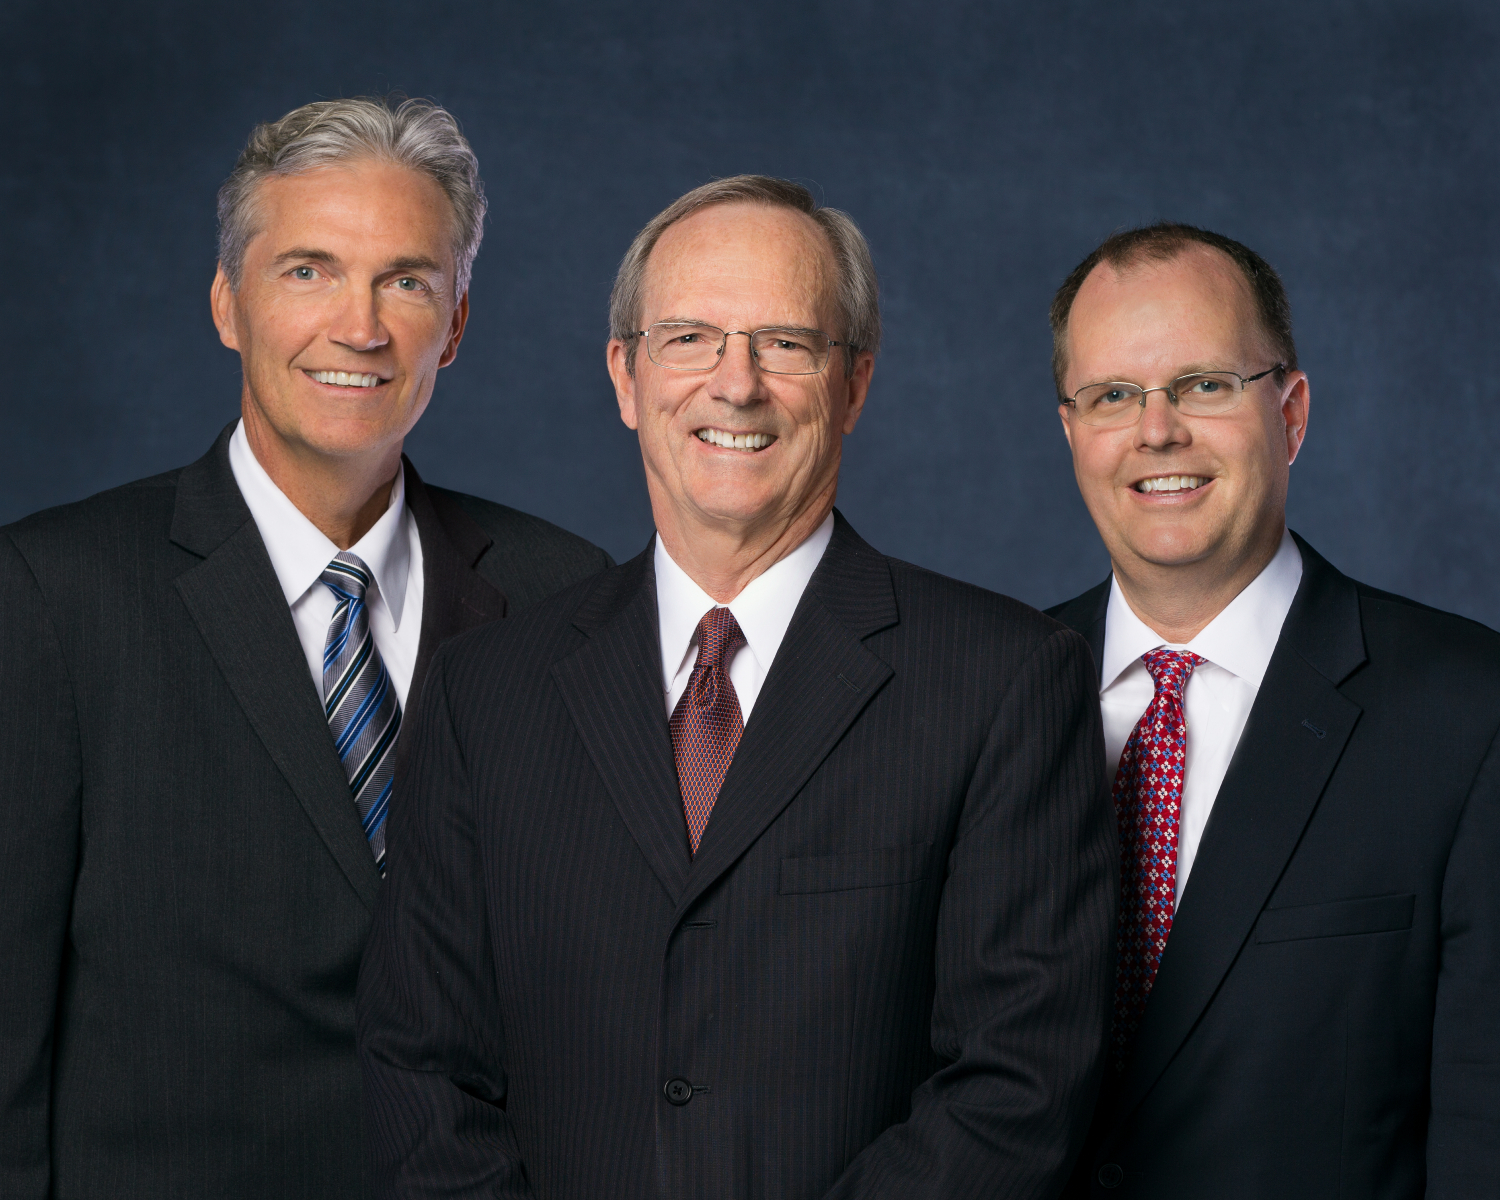 Brother Tad R. Callister, president, center, with Brother Devin G. Durrant, first counselor, left, and Brother Brian K. Ashton, second counselor, right. These men served together as the Sunday School general presidency until their release in April 2019.